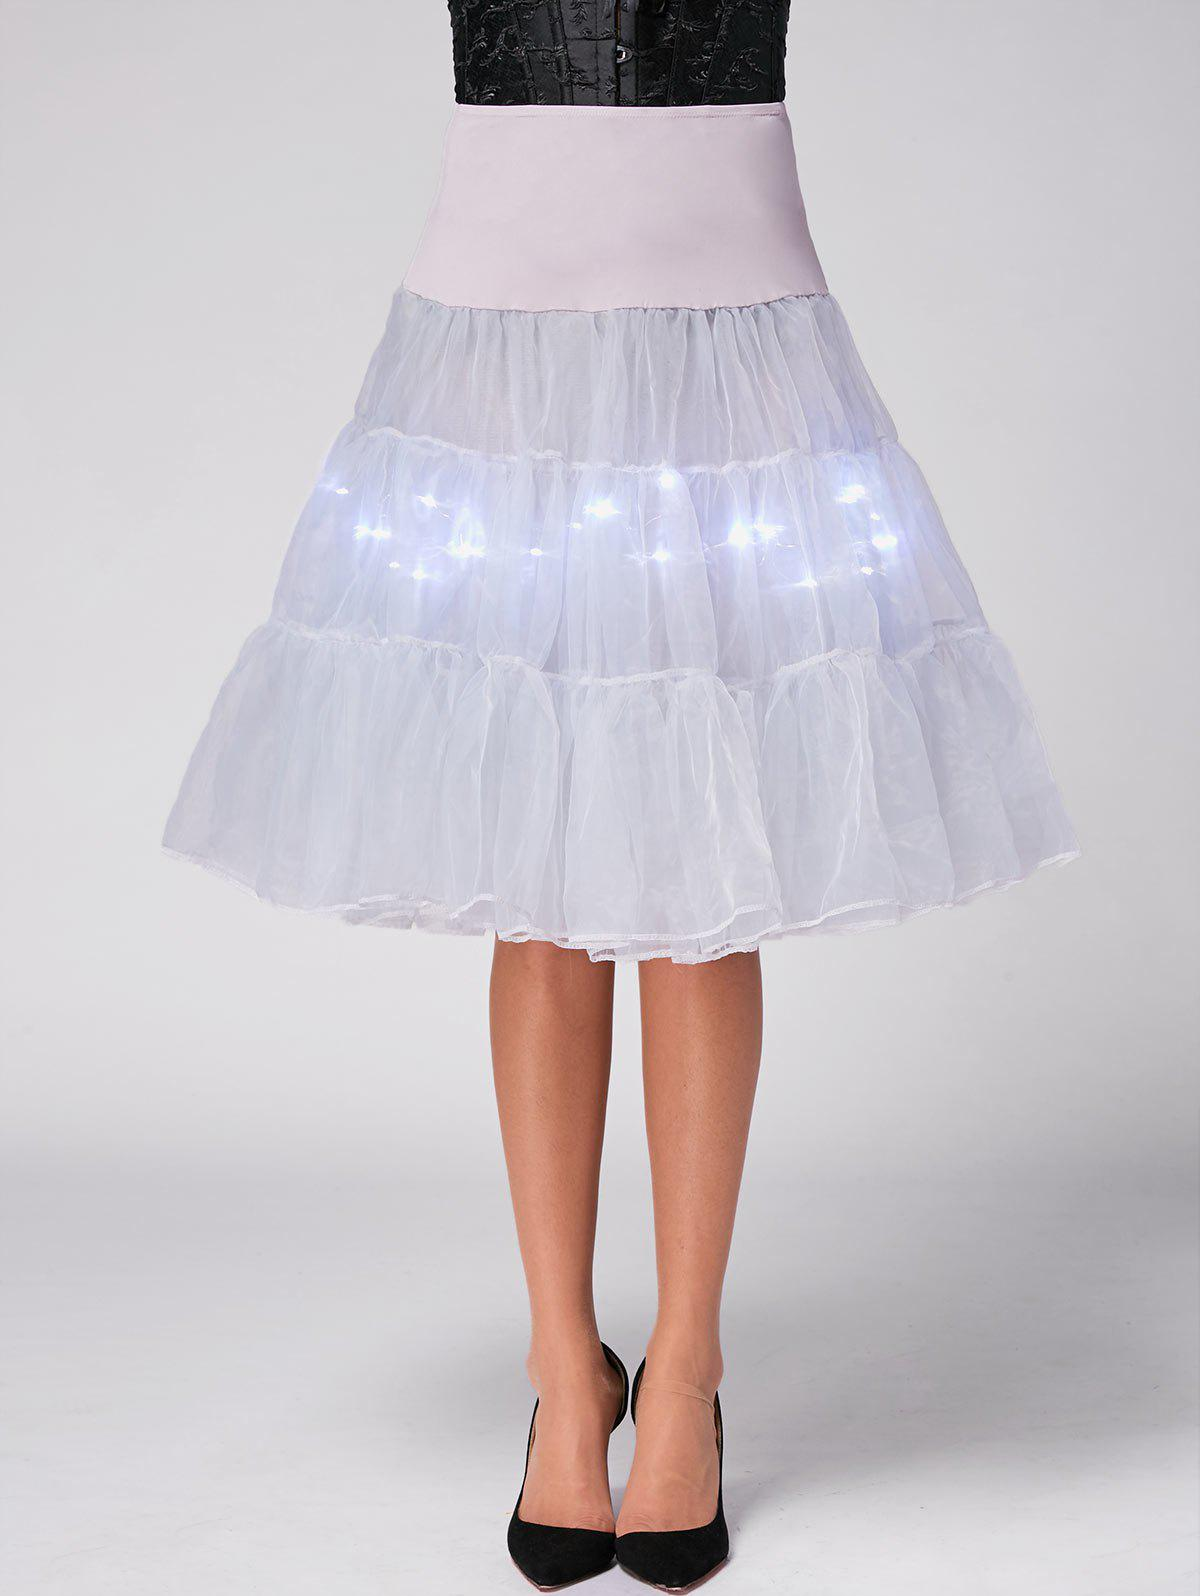 Shop Flounce Light Up Bubble Cosplay Skirt